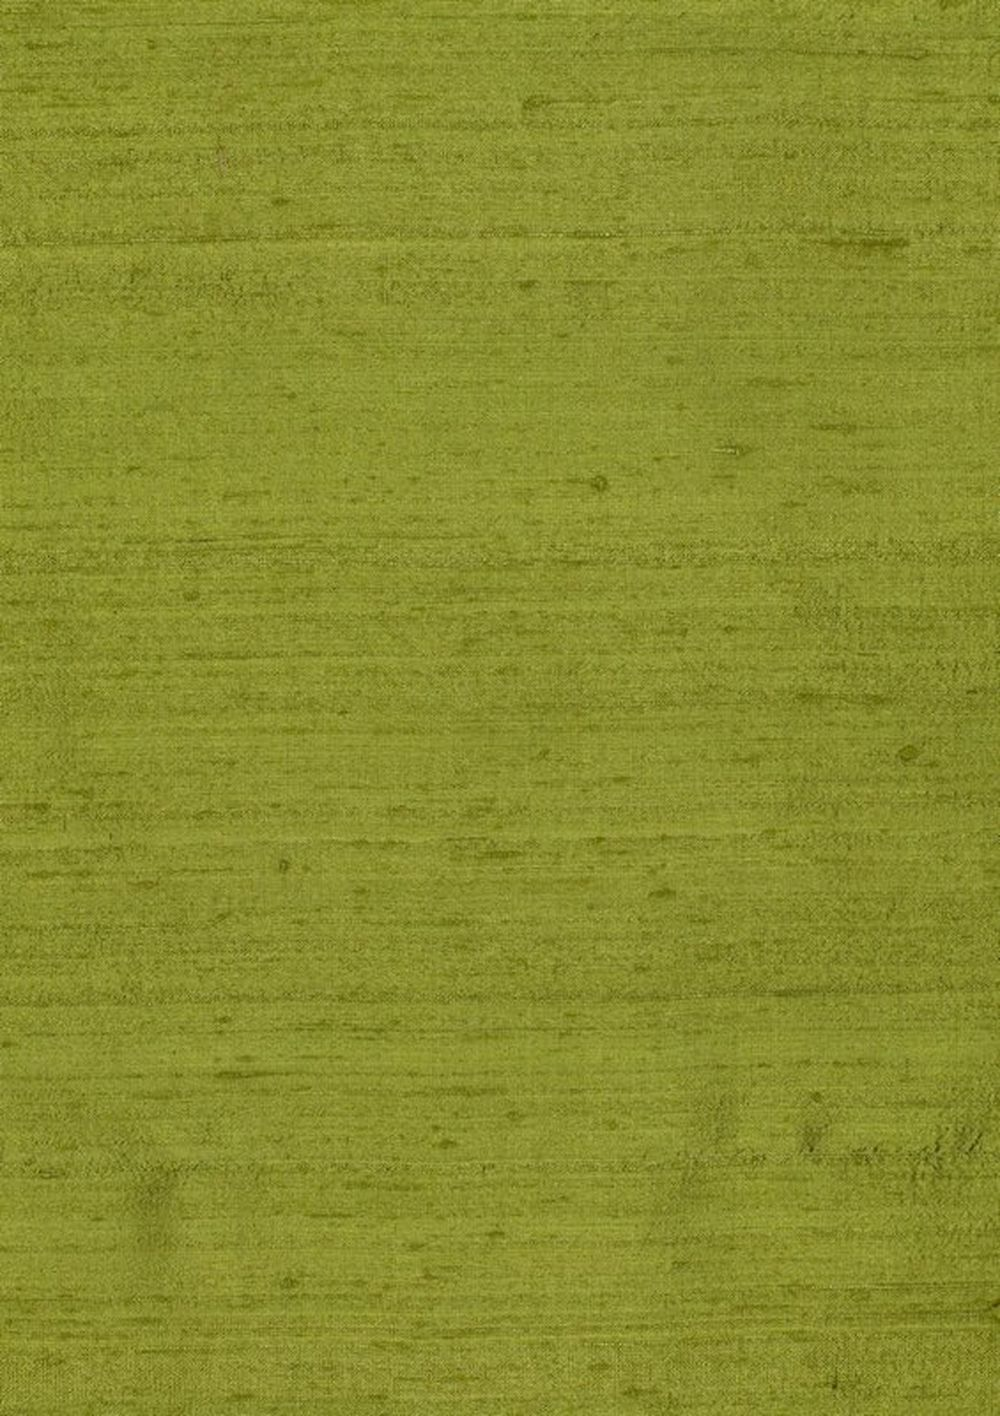 Photo of the fabric Indulgence Kiwi-224 swatch by Zepel. Use for Curtains. Style of Plain